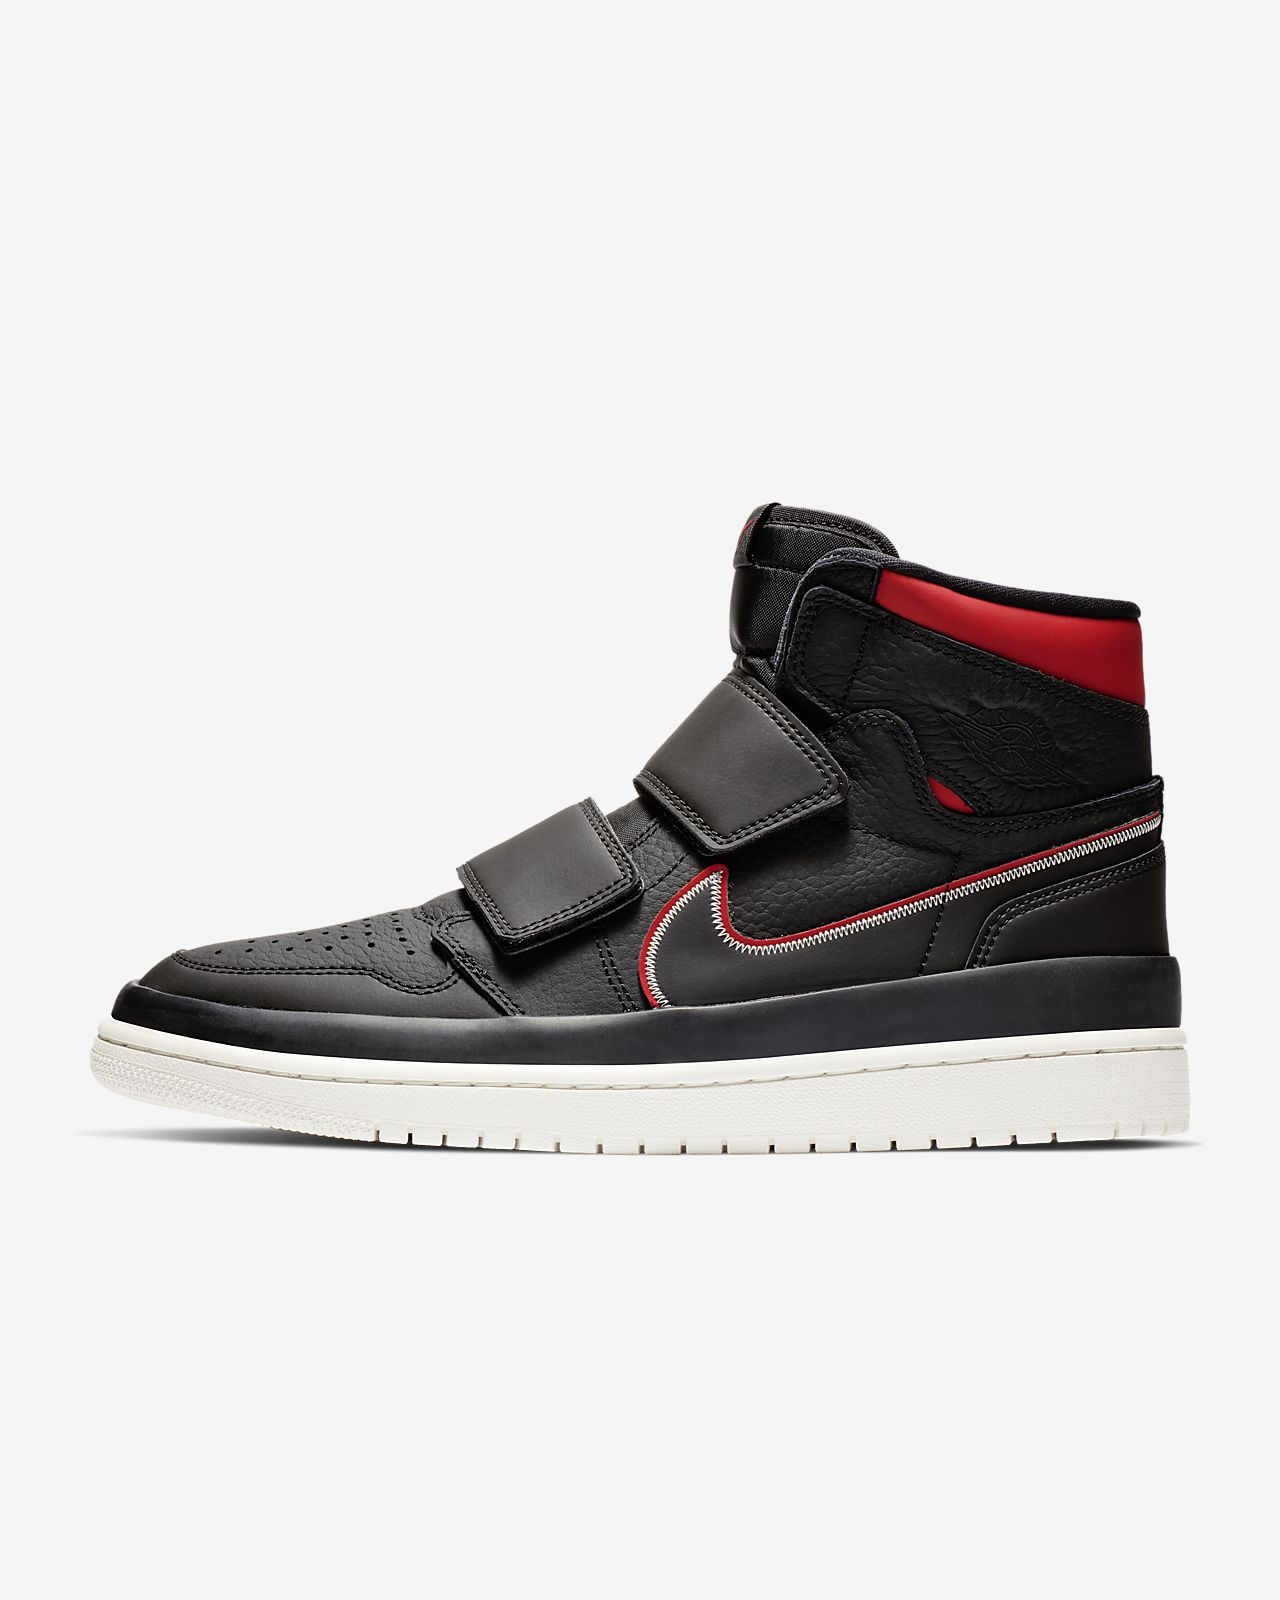 Air Jordan 1 Retro High Double Strap Men's Shoe